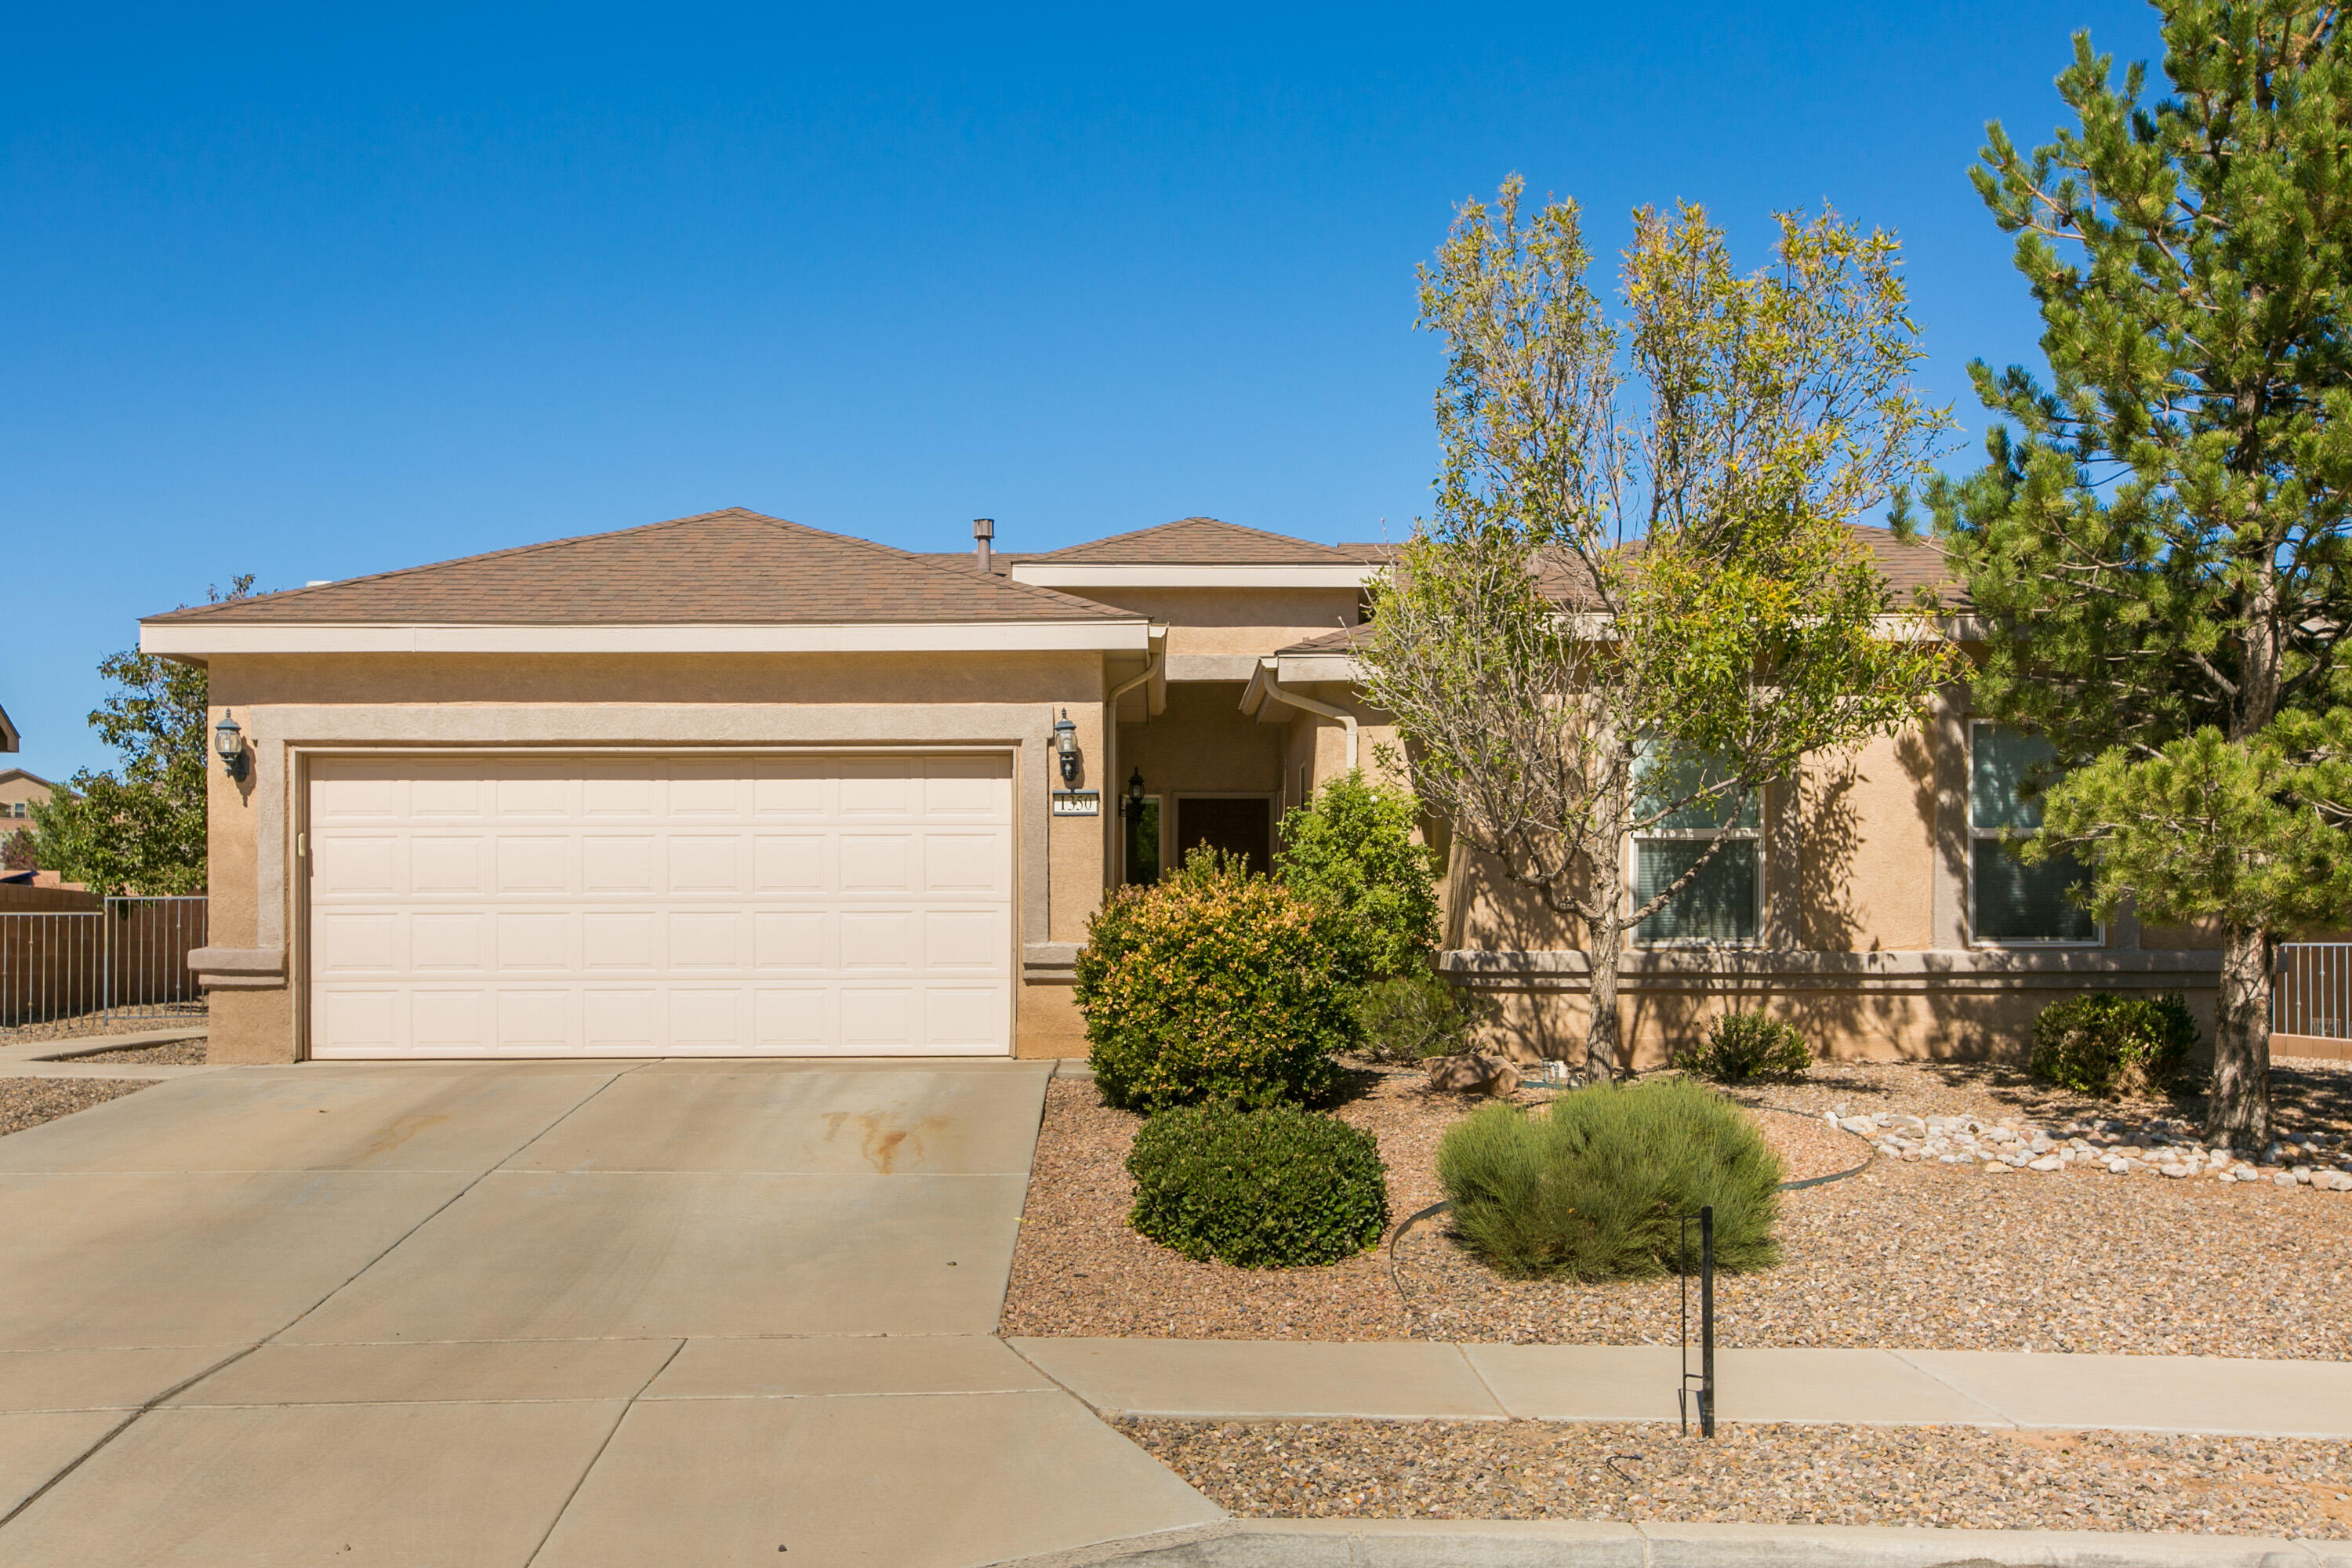 Incredibly flexible floorplan in this rare 4 bedroom house. You're welcomed by a generous entryway with room for a table and high ceilings. Lots of functional wall space throughout the house makes displaying your art a breeze. Lots of room to work from home and home school with a formal dining room with an extra ''free space'' area far from the bedrooms. Granite counters, open kitchen with island, lots of cabinet and counter space, an eat in nook with lots of light make this house highly functional and welcoming. Plus a fireplace for those cold days. No neighbor immediately behind makes the lot feel spacious. Room for gardening, and a huge locking shed completes the property's appeal.New roof being installed in November.